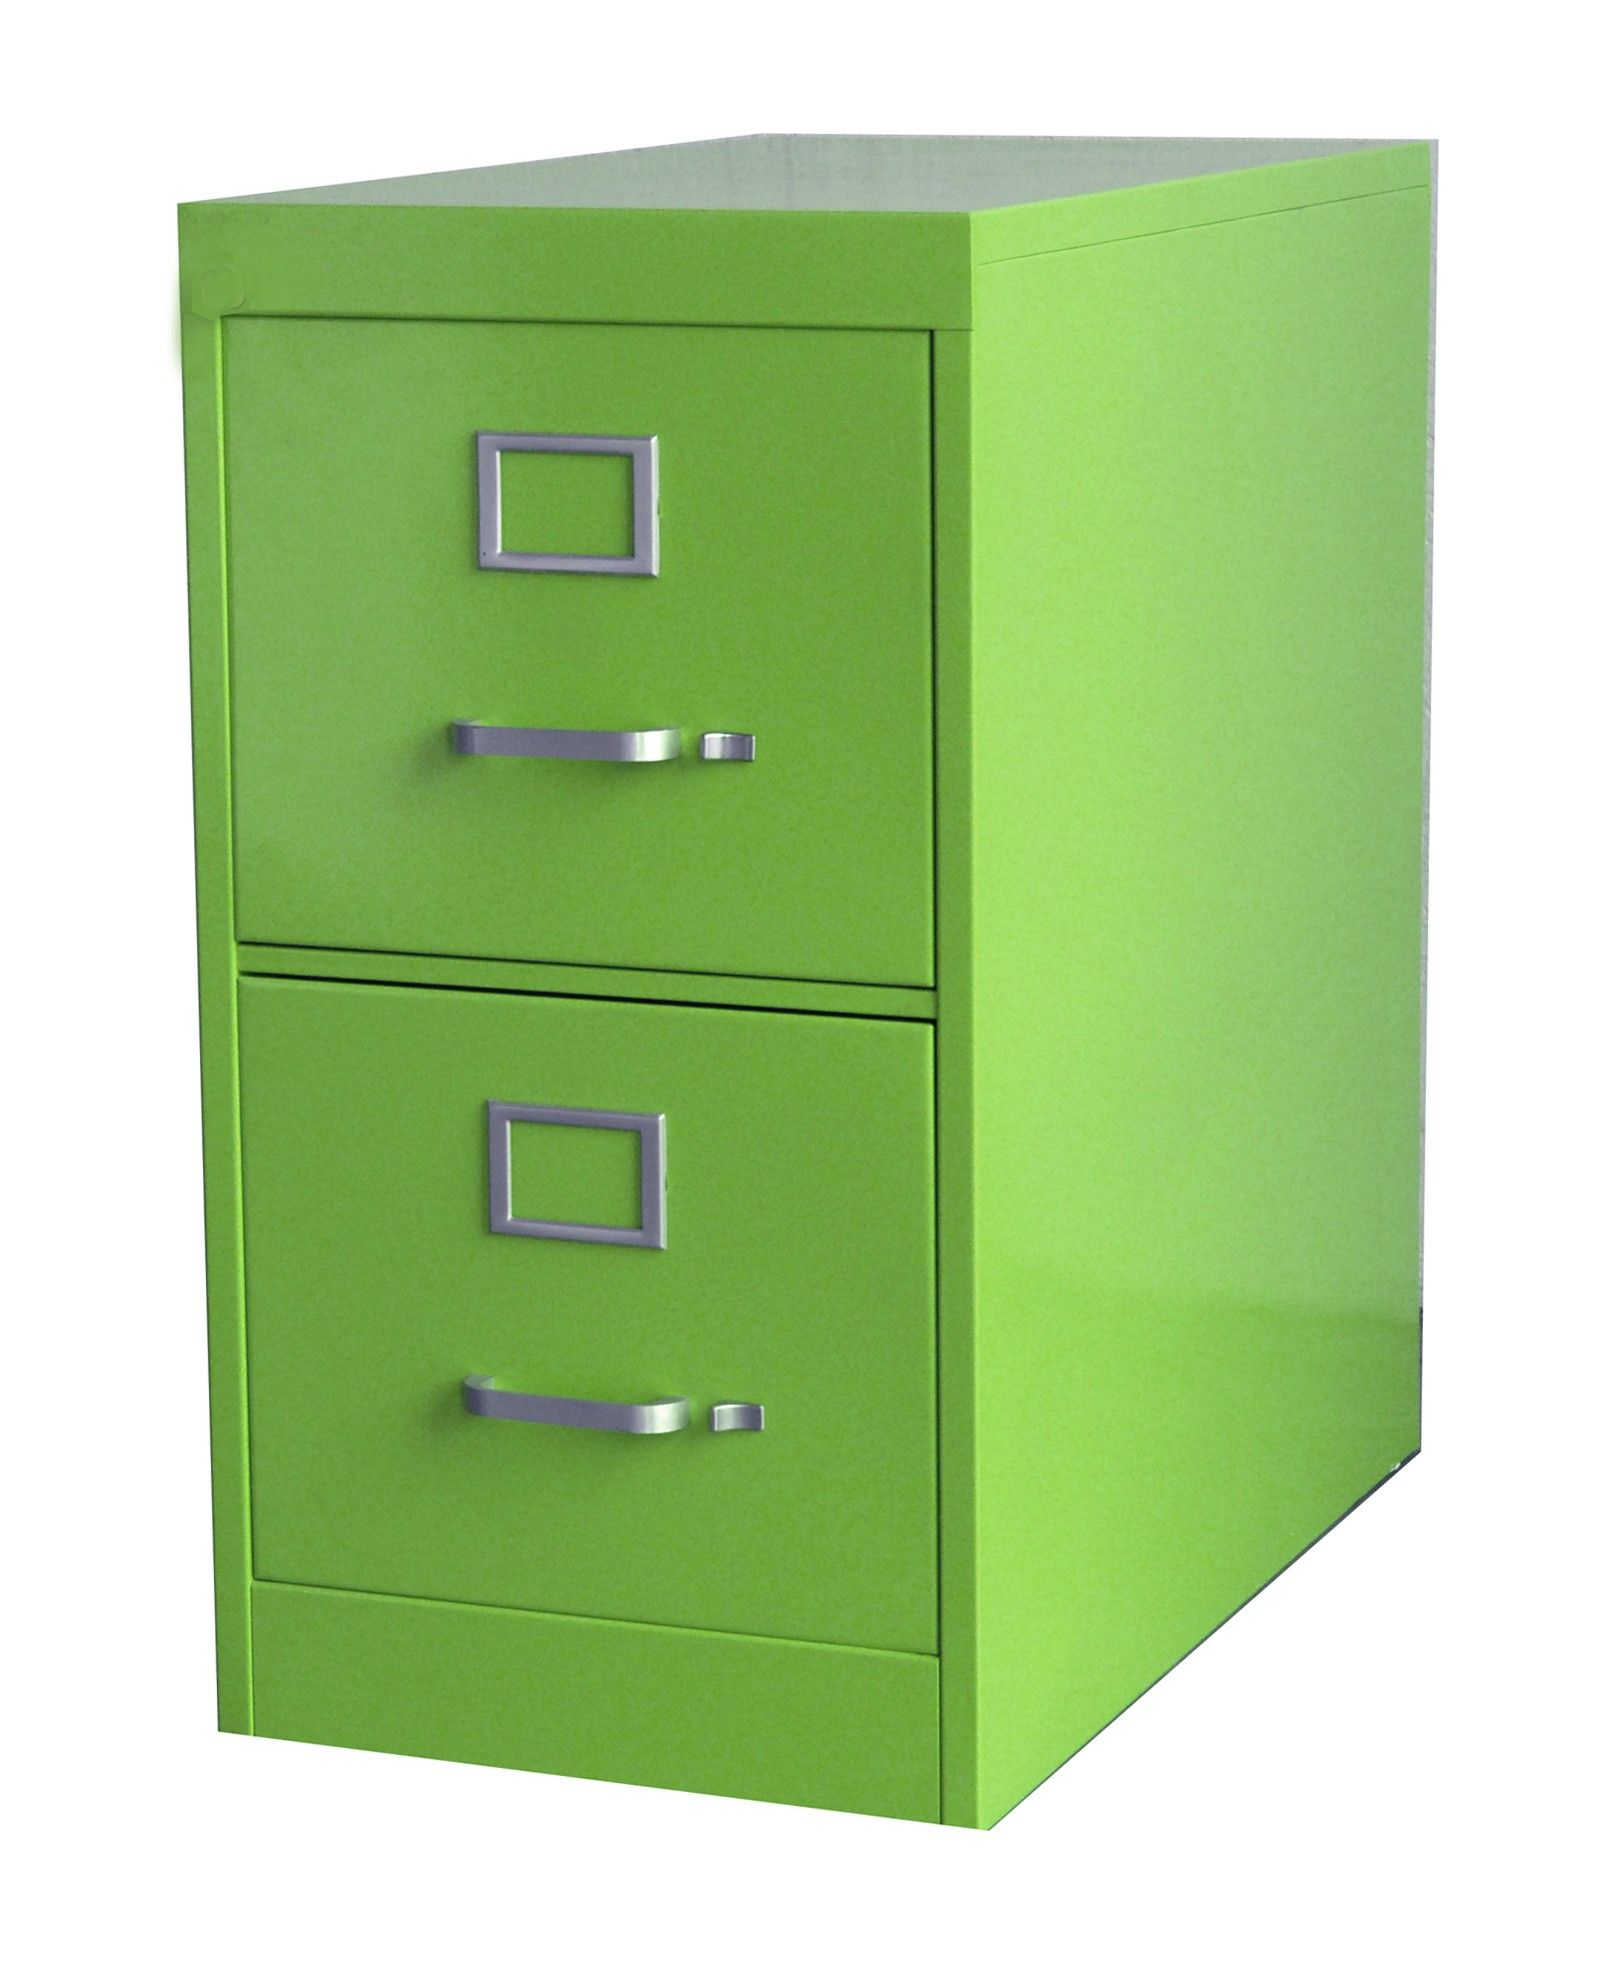 Sort It Streamline It File It This Company Brings Filing To A